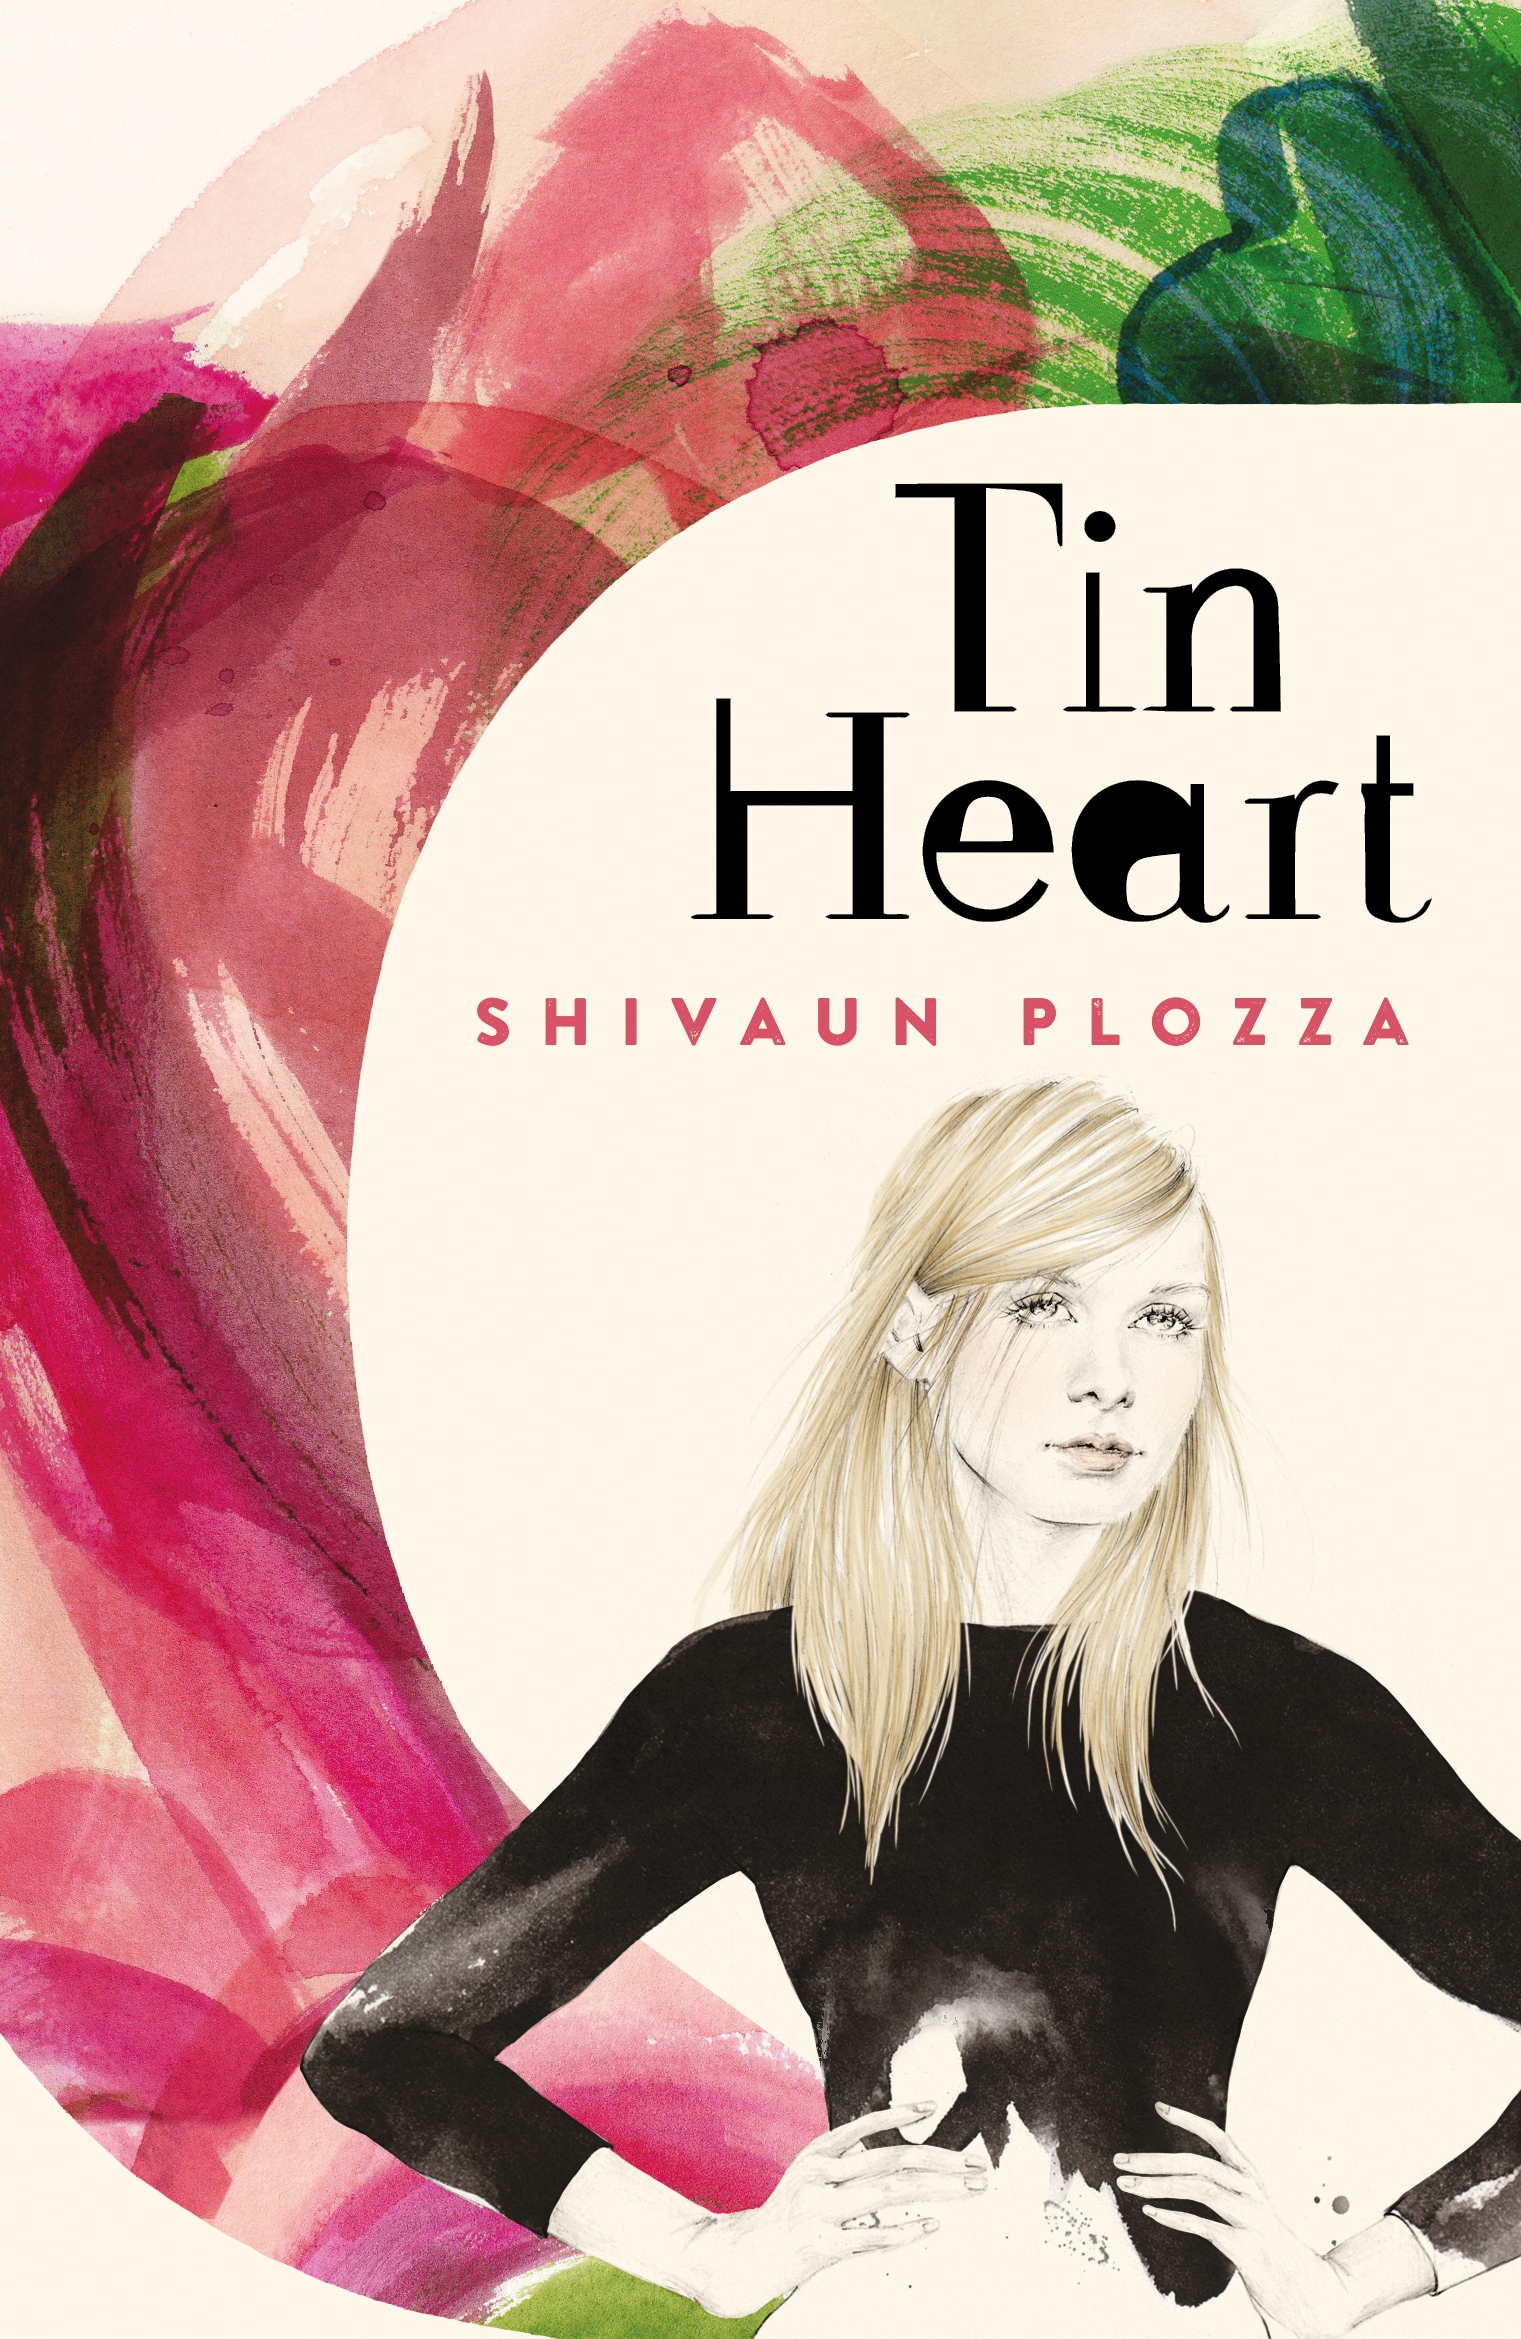 shivaun-plozza-tin-heart.jpg